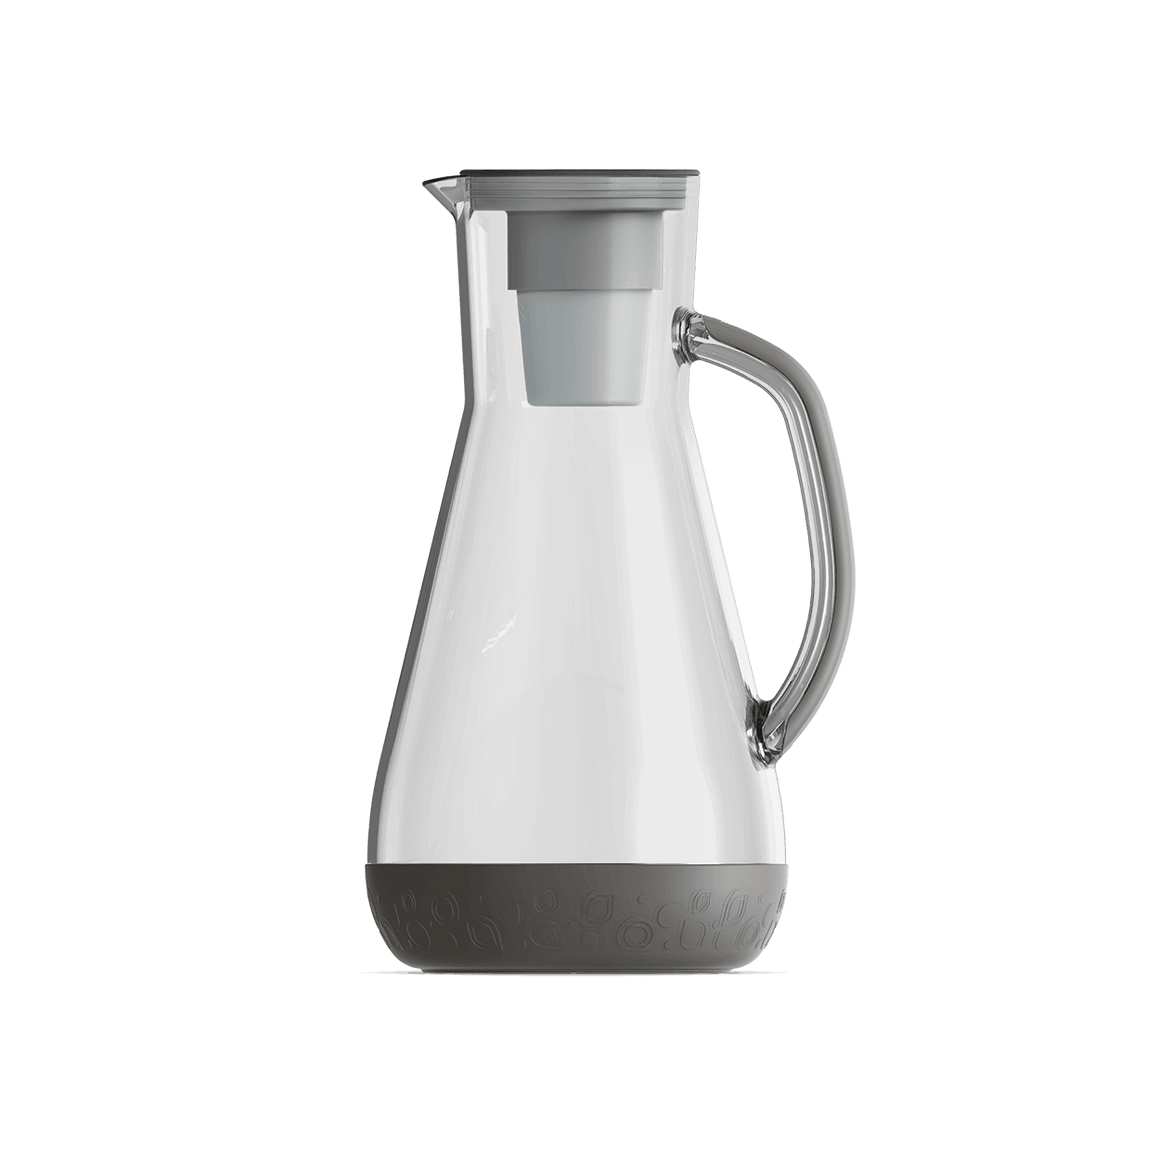 64 oz Pitcher Grey With Filter